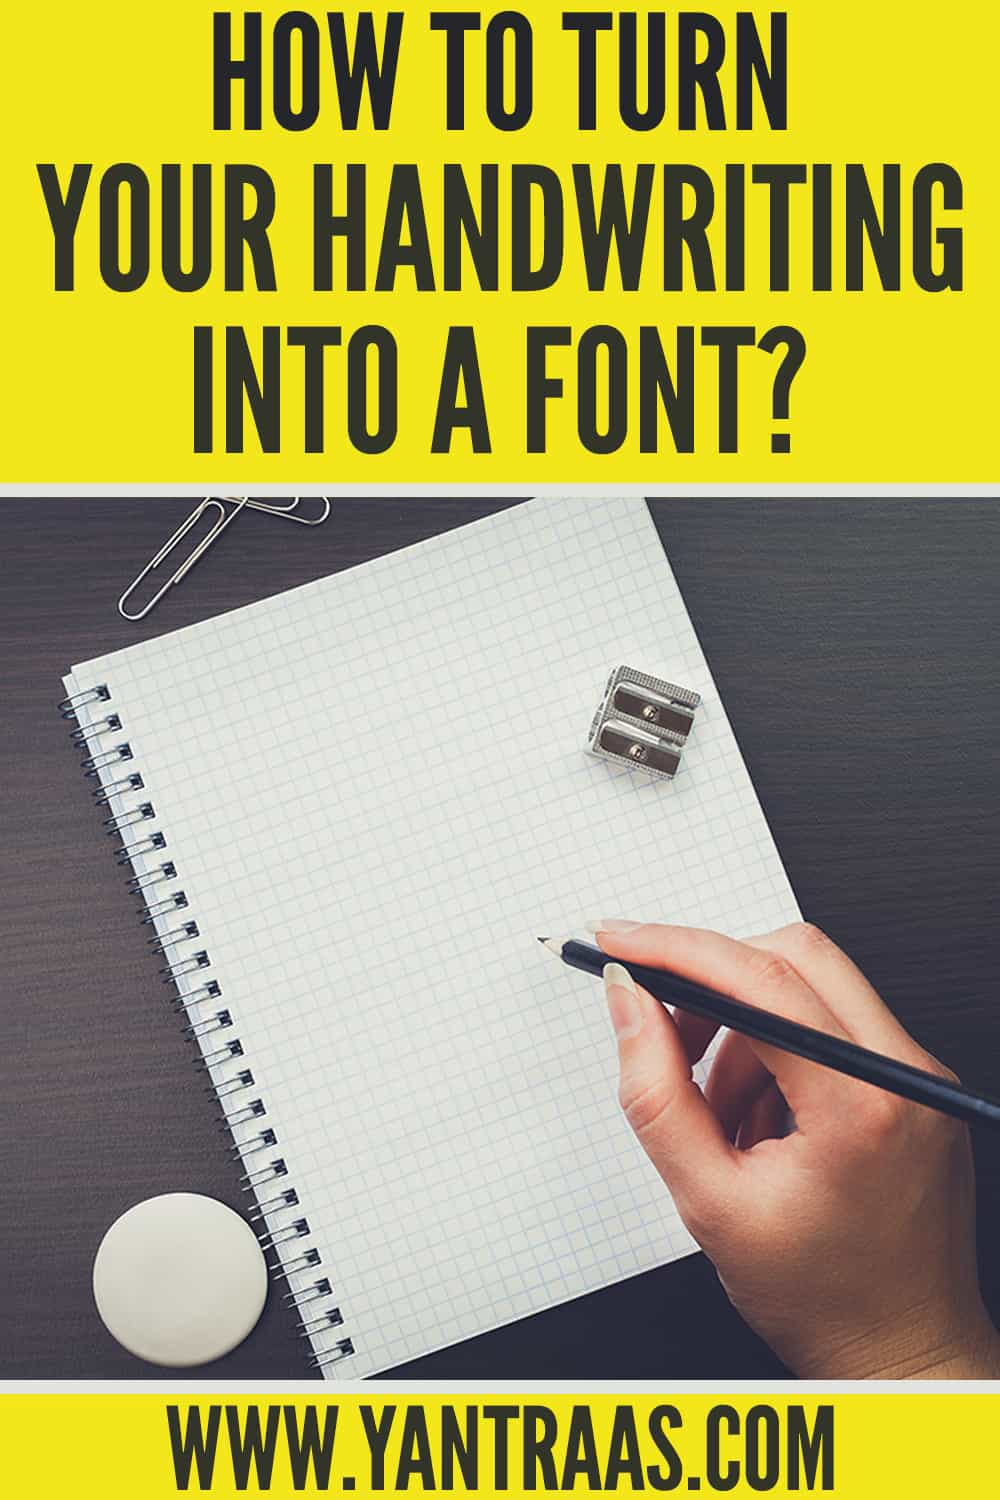 turn your handwriting into font